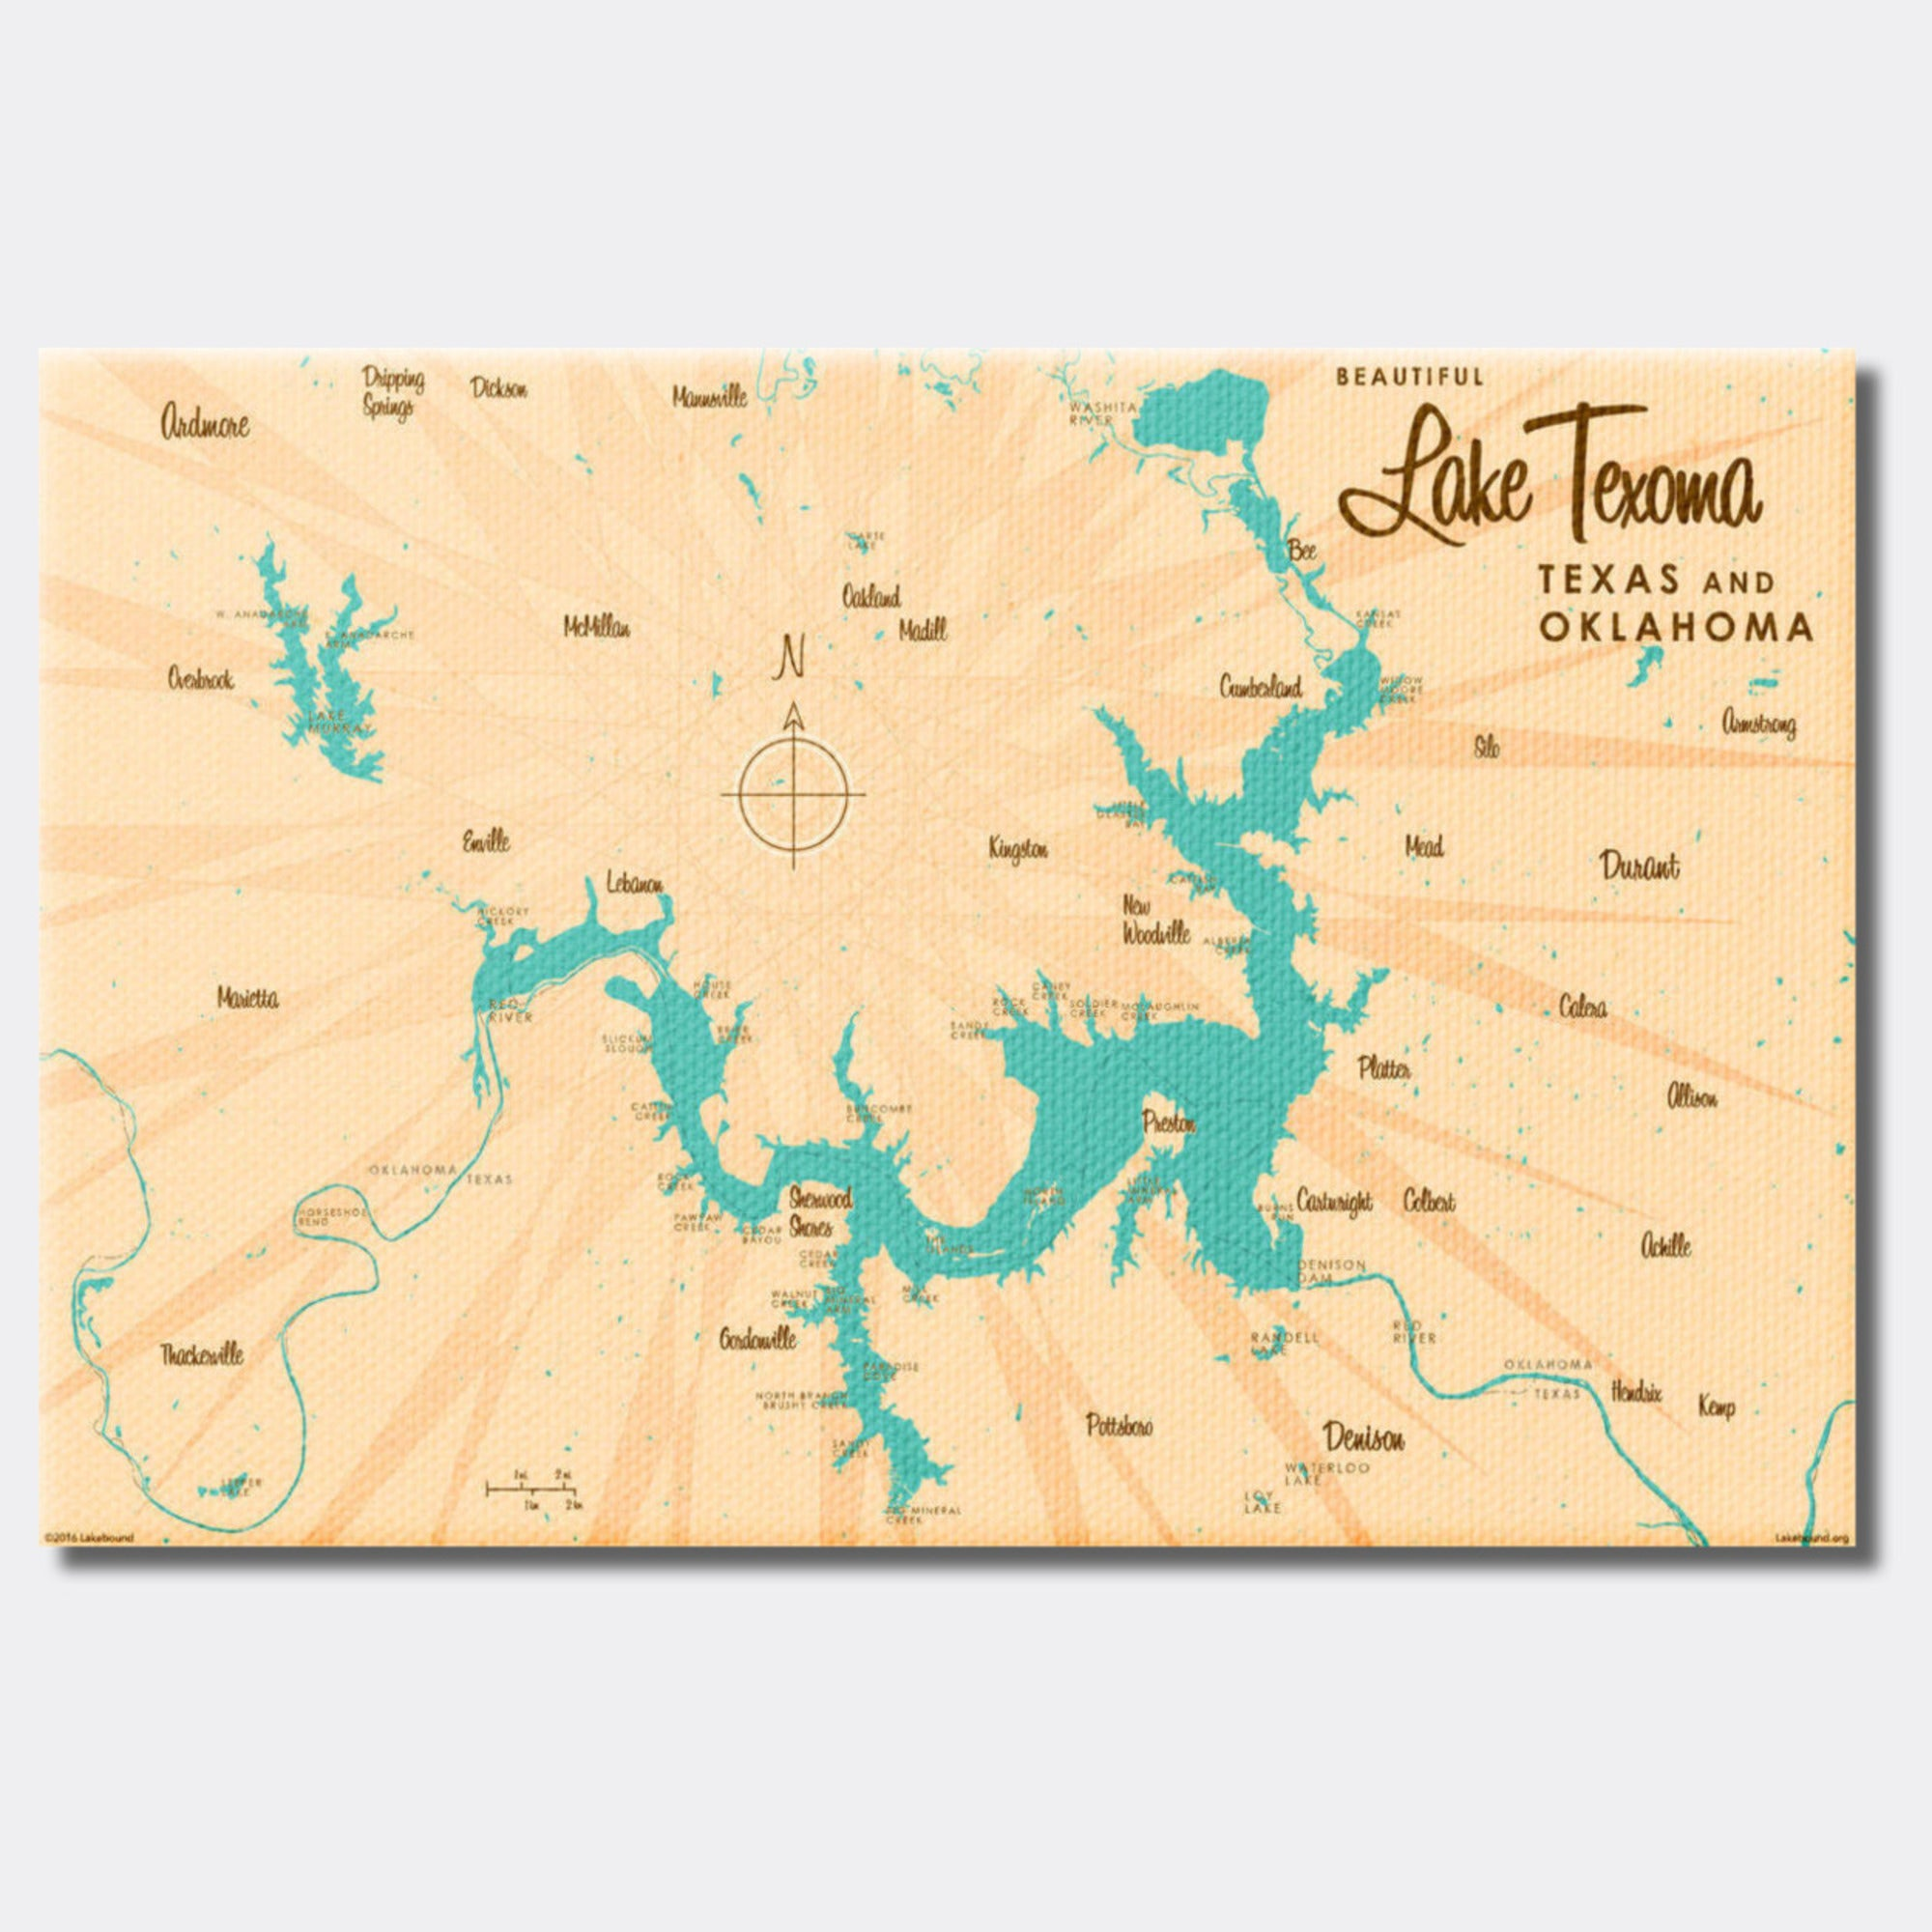 Lake Texoma TX Oklahoma, Canvas Print